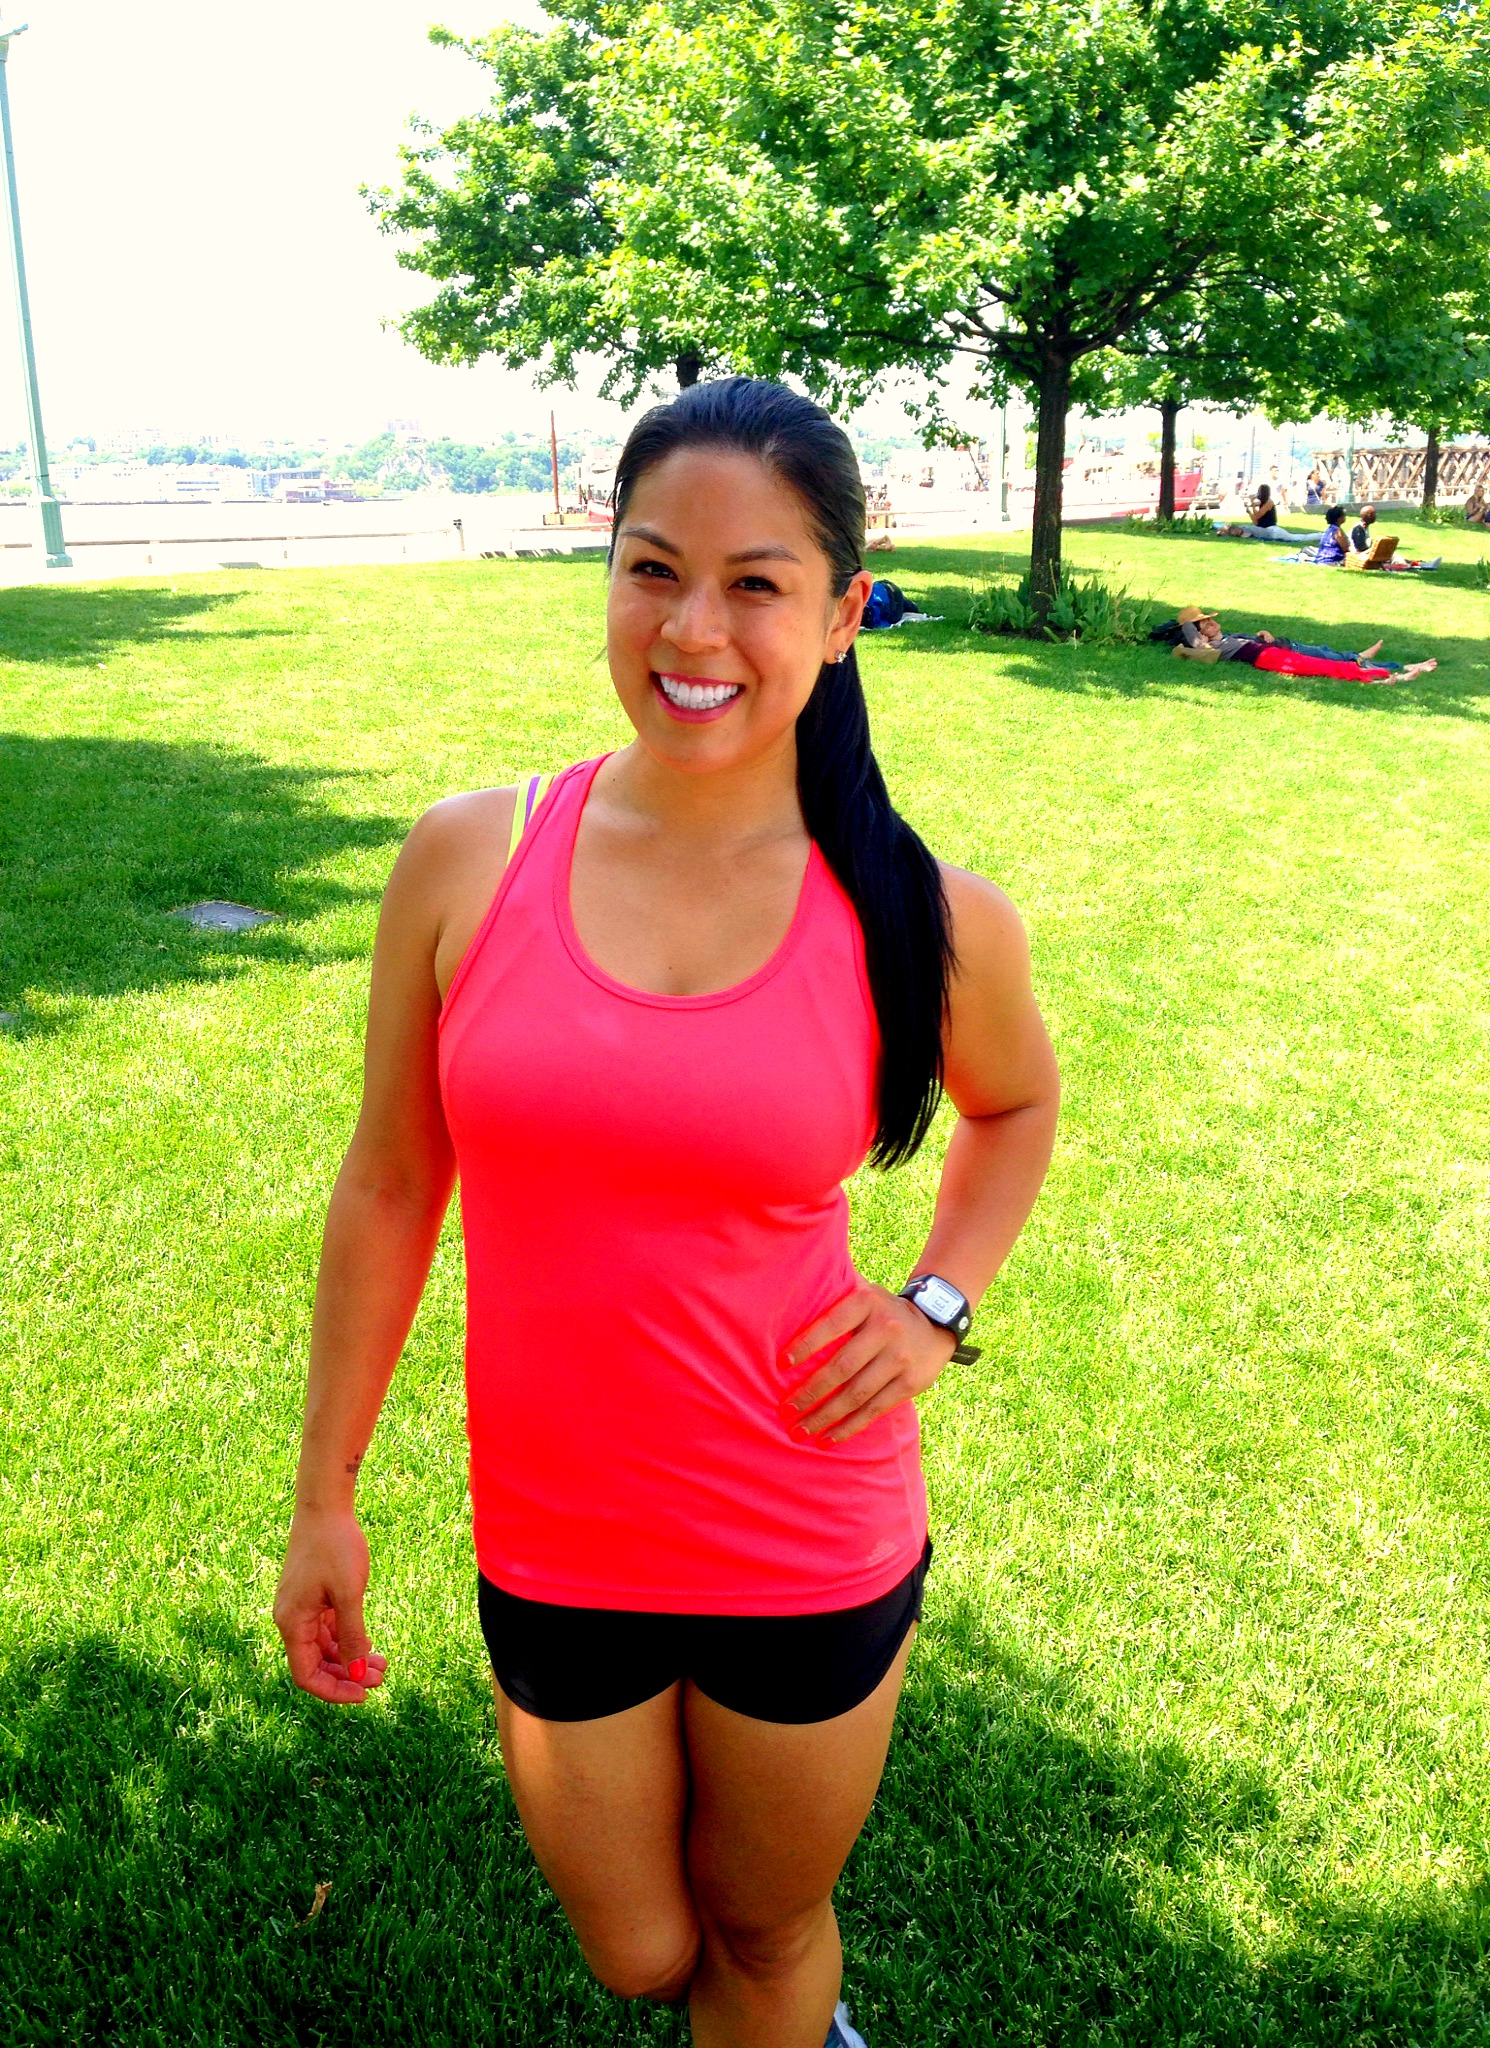 It's finally SUMMER! Let's get outdoors for some fresh air, sunshine and an awesome workout!